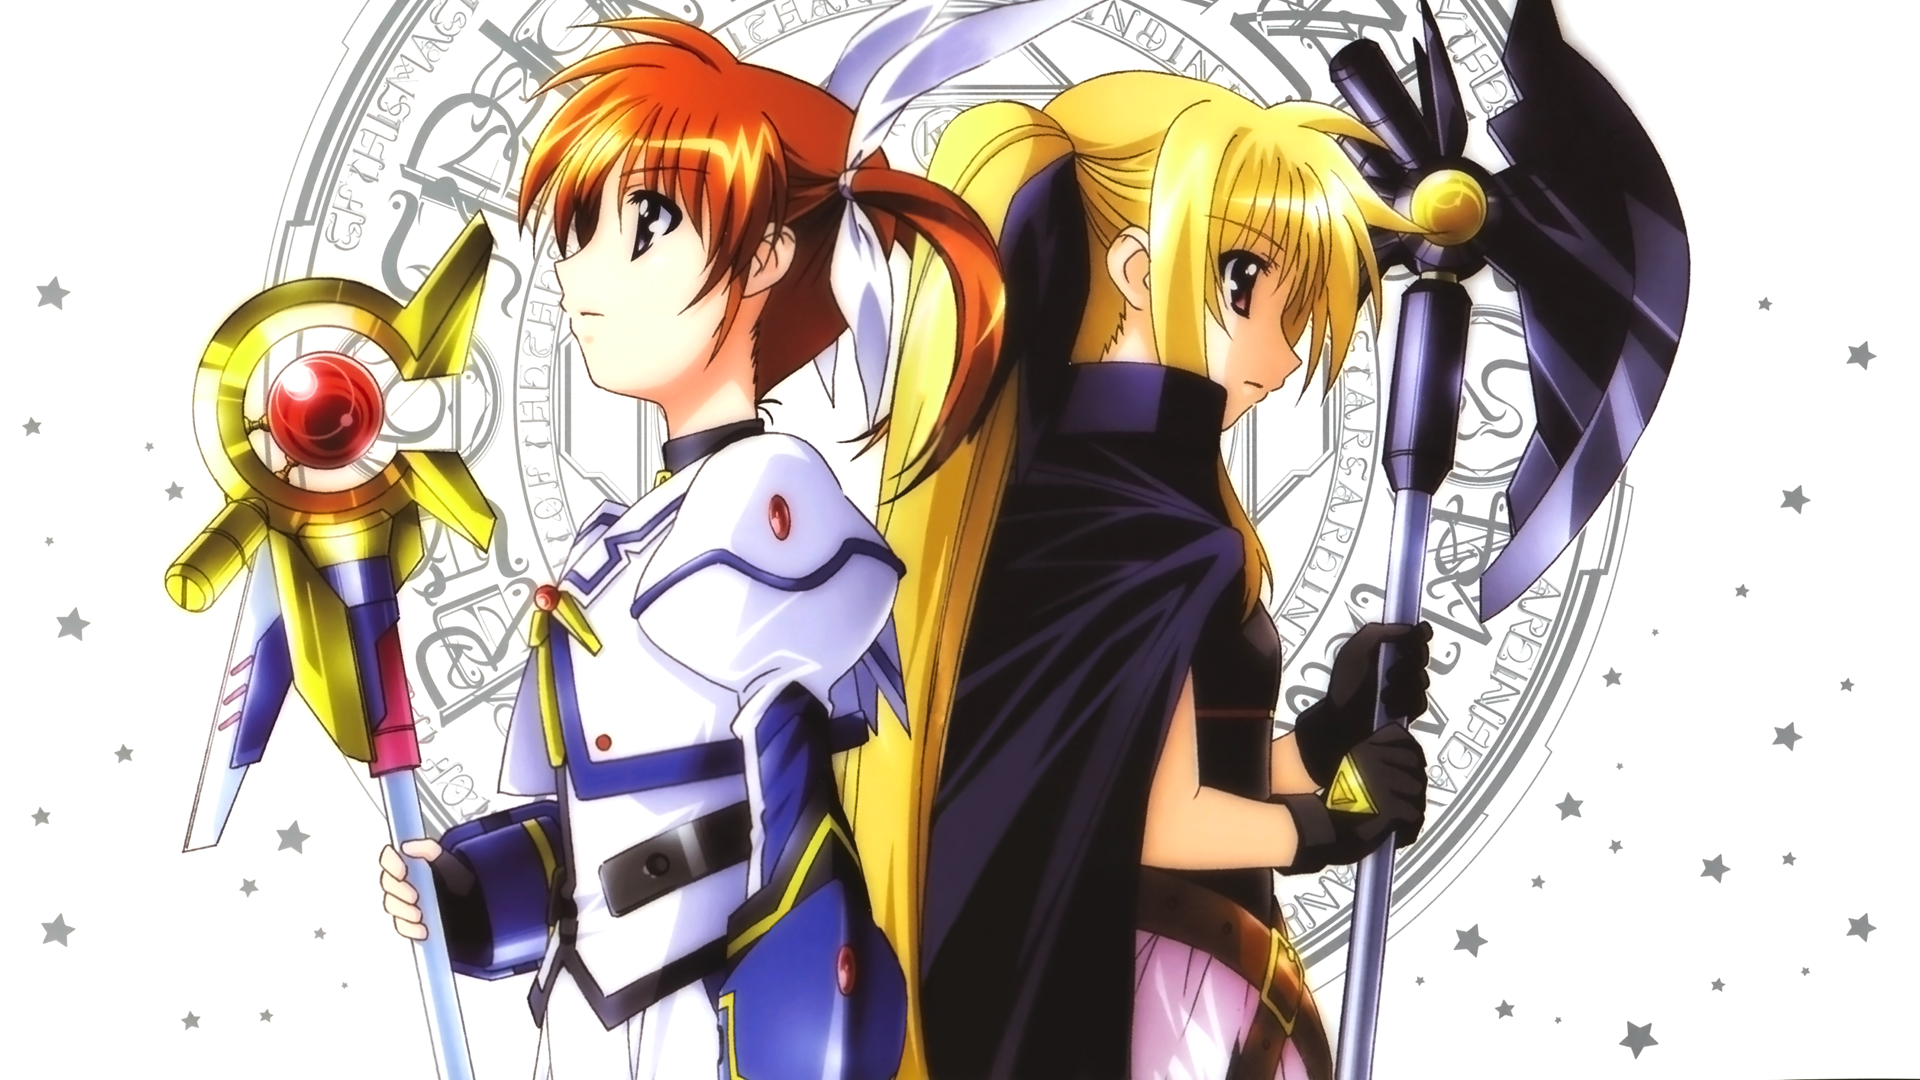 Anime Girl With Cat Ears Wallpaper Magical Girl Lyrical Nanoha Strikers Hd Wallpaper